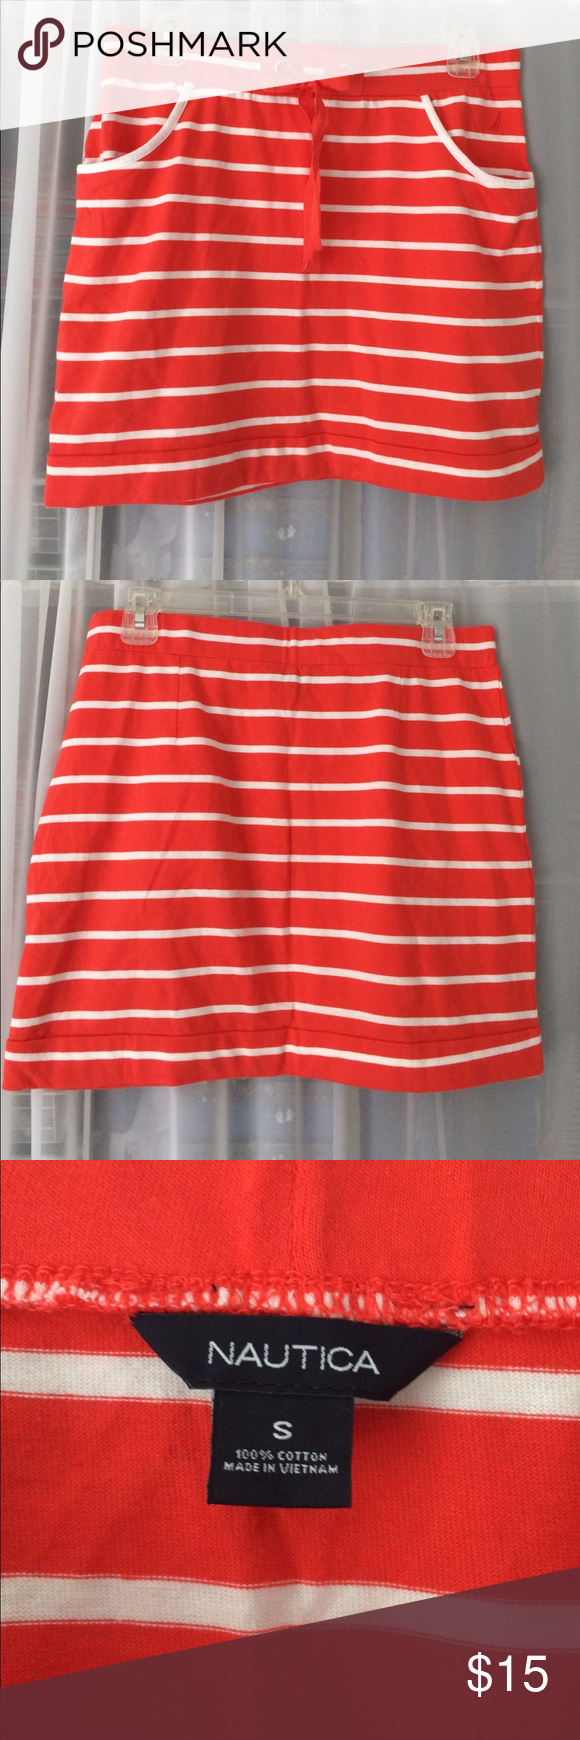 Nautica striped knit skirt Orange and white striped skirt from nautica. 100% cotton. Worn lighty, in great condition, has pockets and a drawstring tie around the waist Nautica Skirts